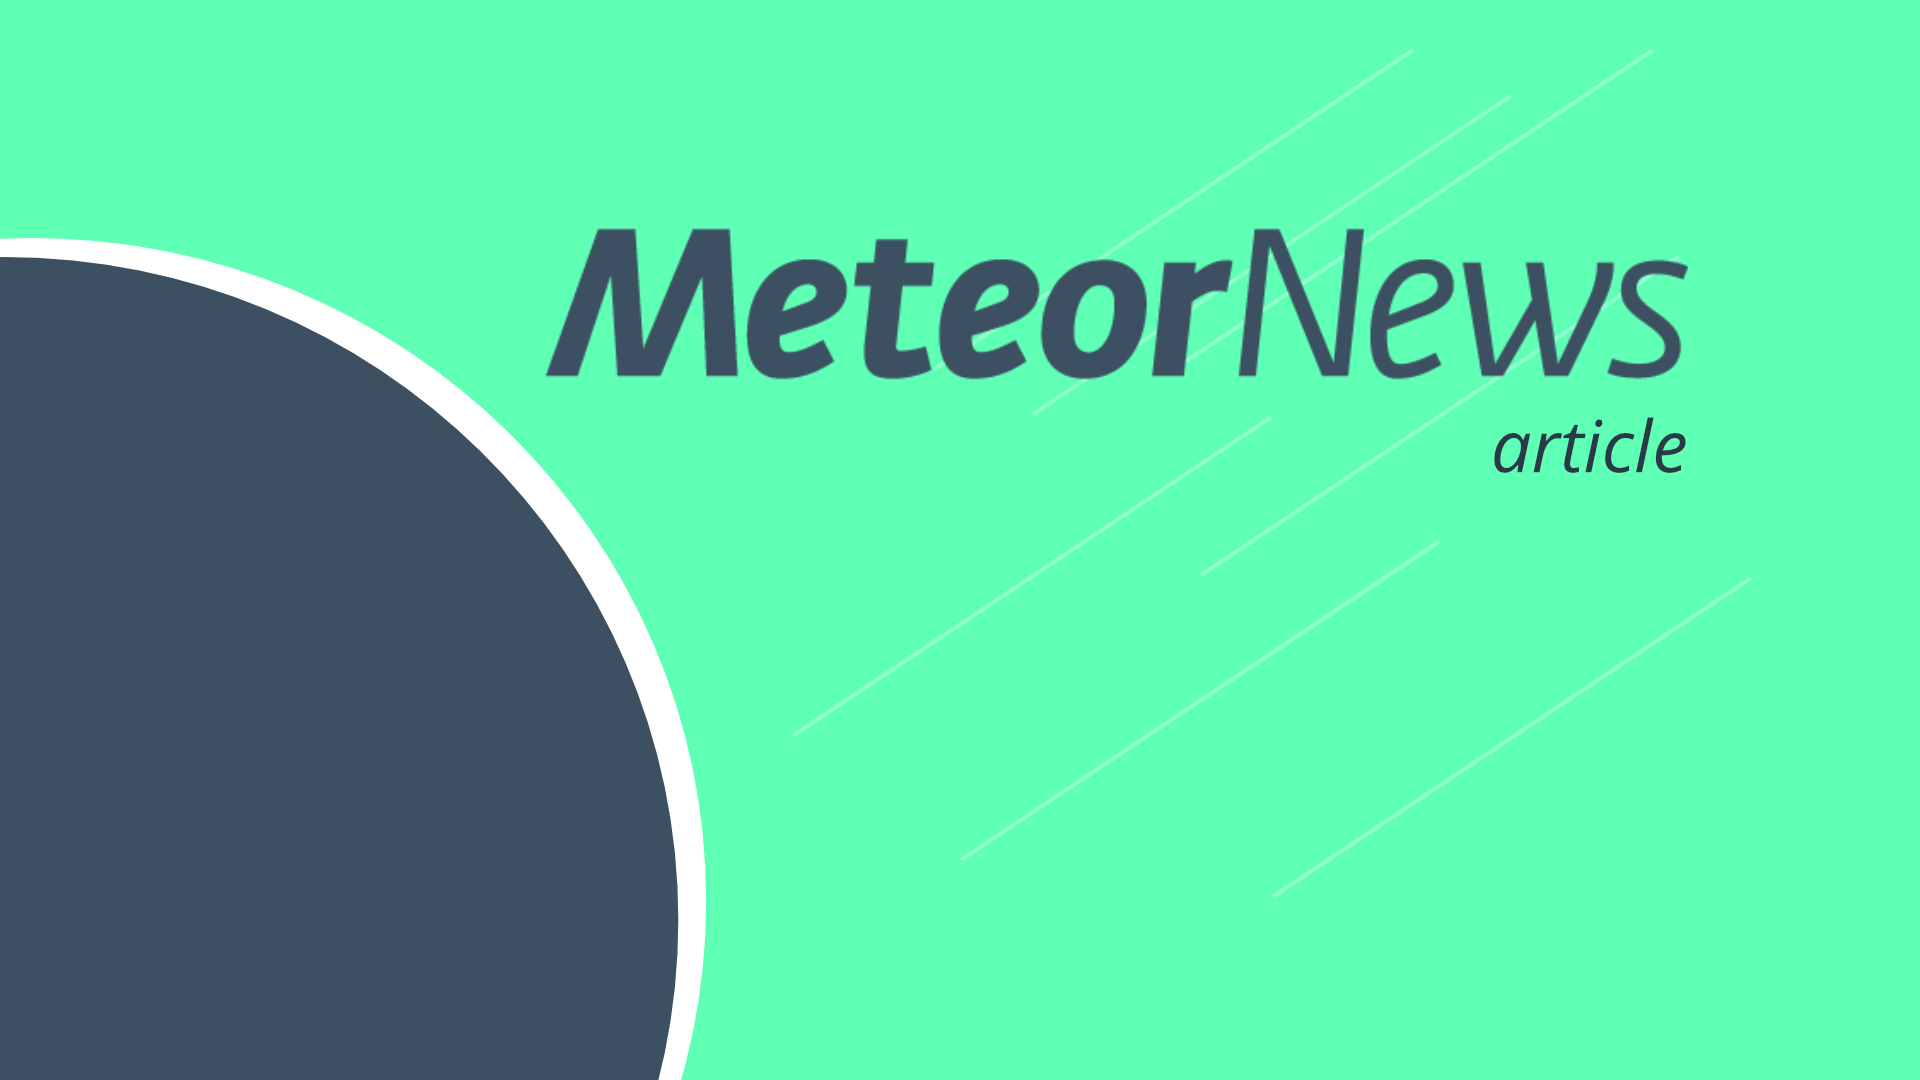 News from the meteor library: Estimating trajectories of meteors